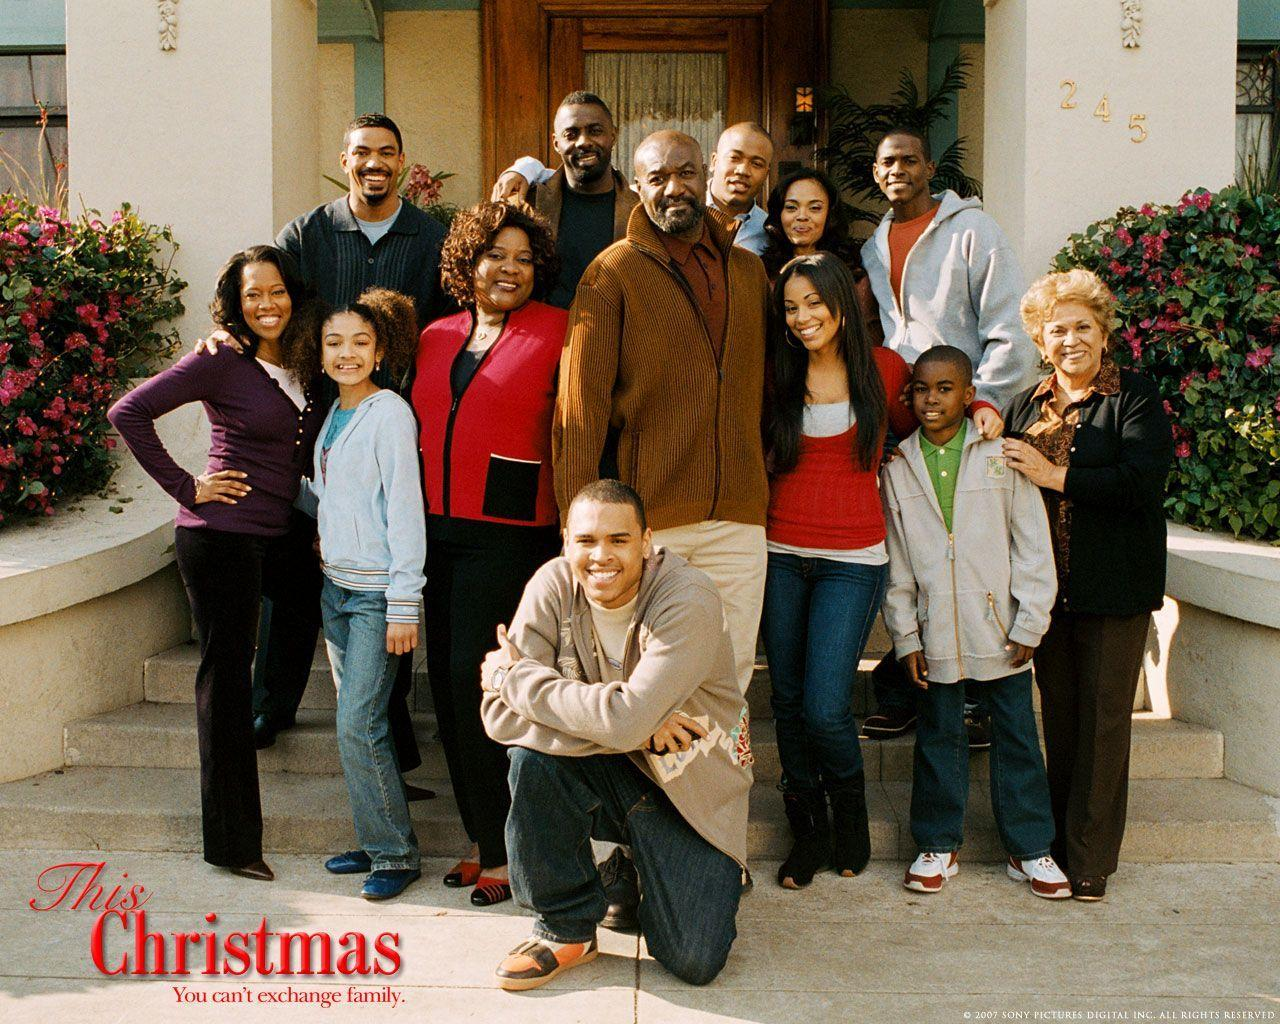 Chris Brown This Christmas.This Christmas Movie Chris Brown Wallpapers Wallpaper Cave